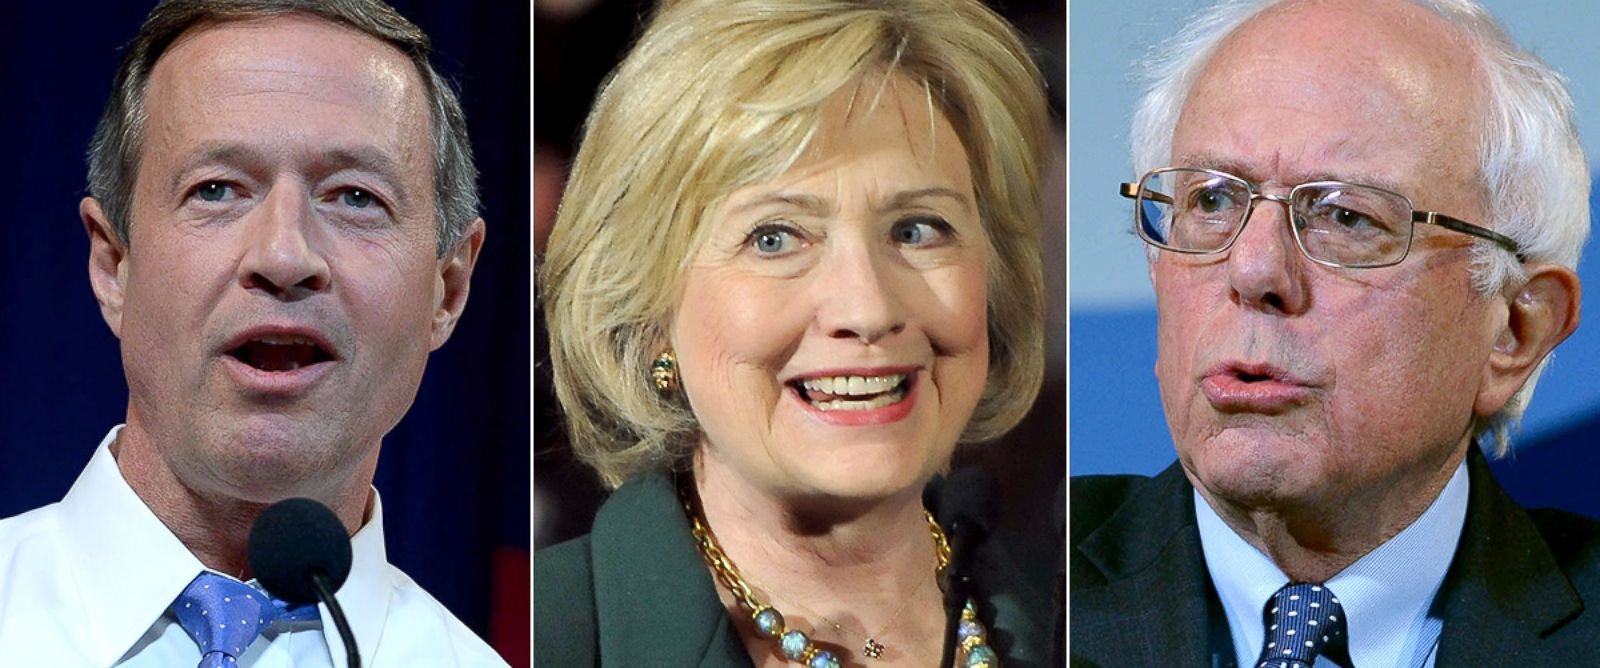 PHOTO: Martin OMalley, Hillary Clinton and Bernie Sanders will partake in the ABC News Democratic debate on Dec. 19, 2015.